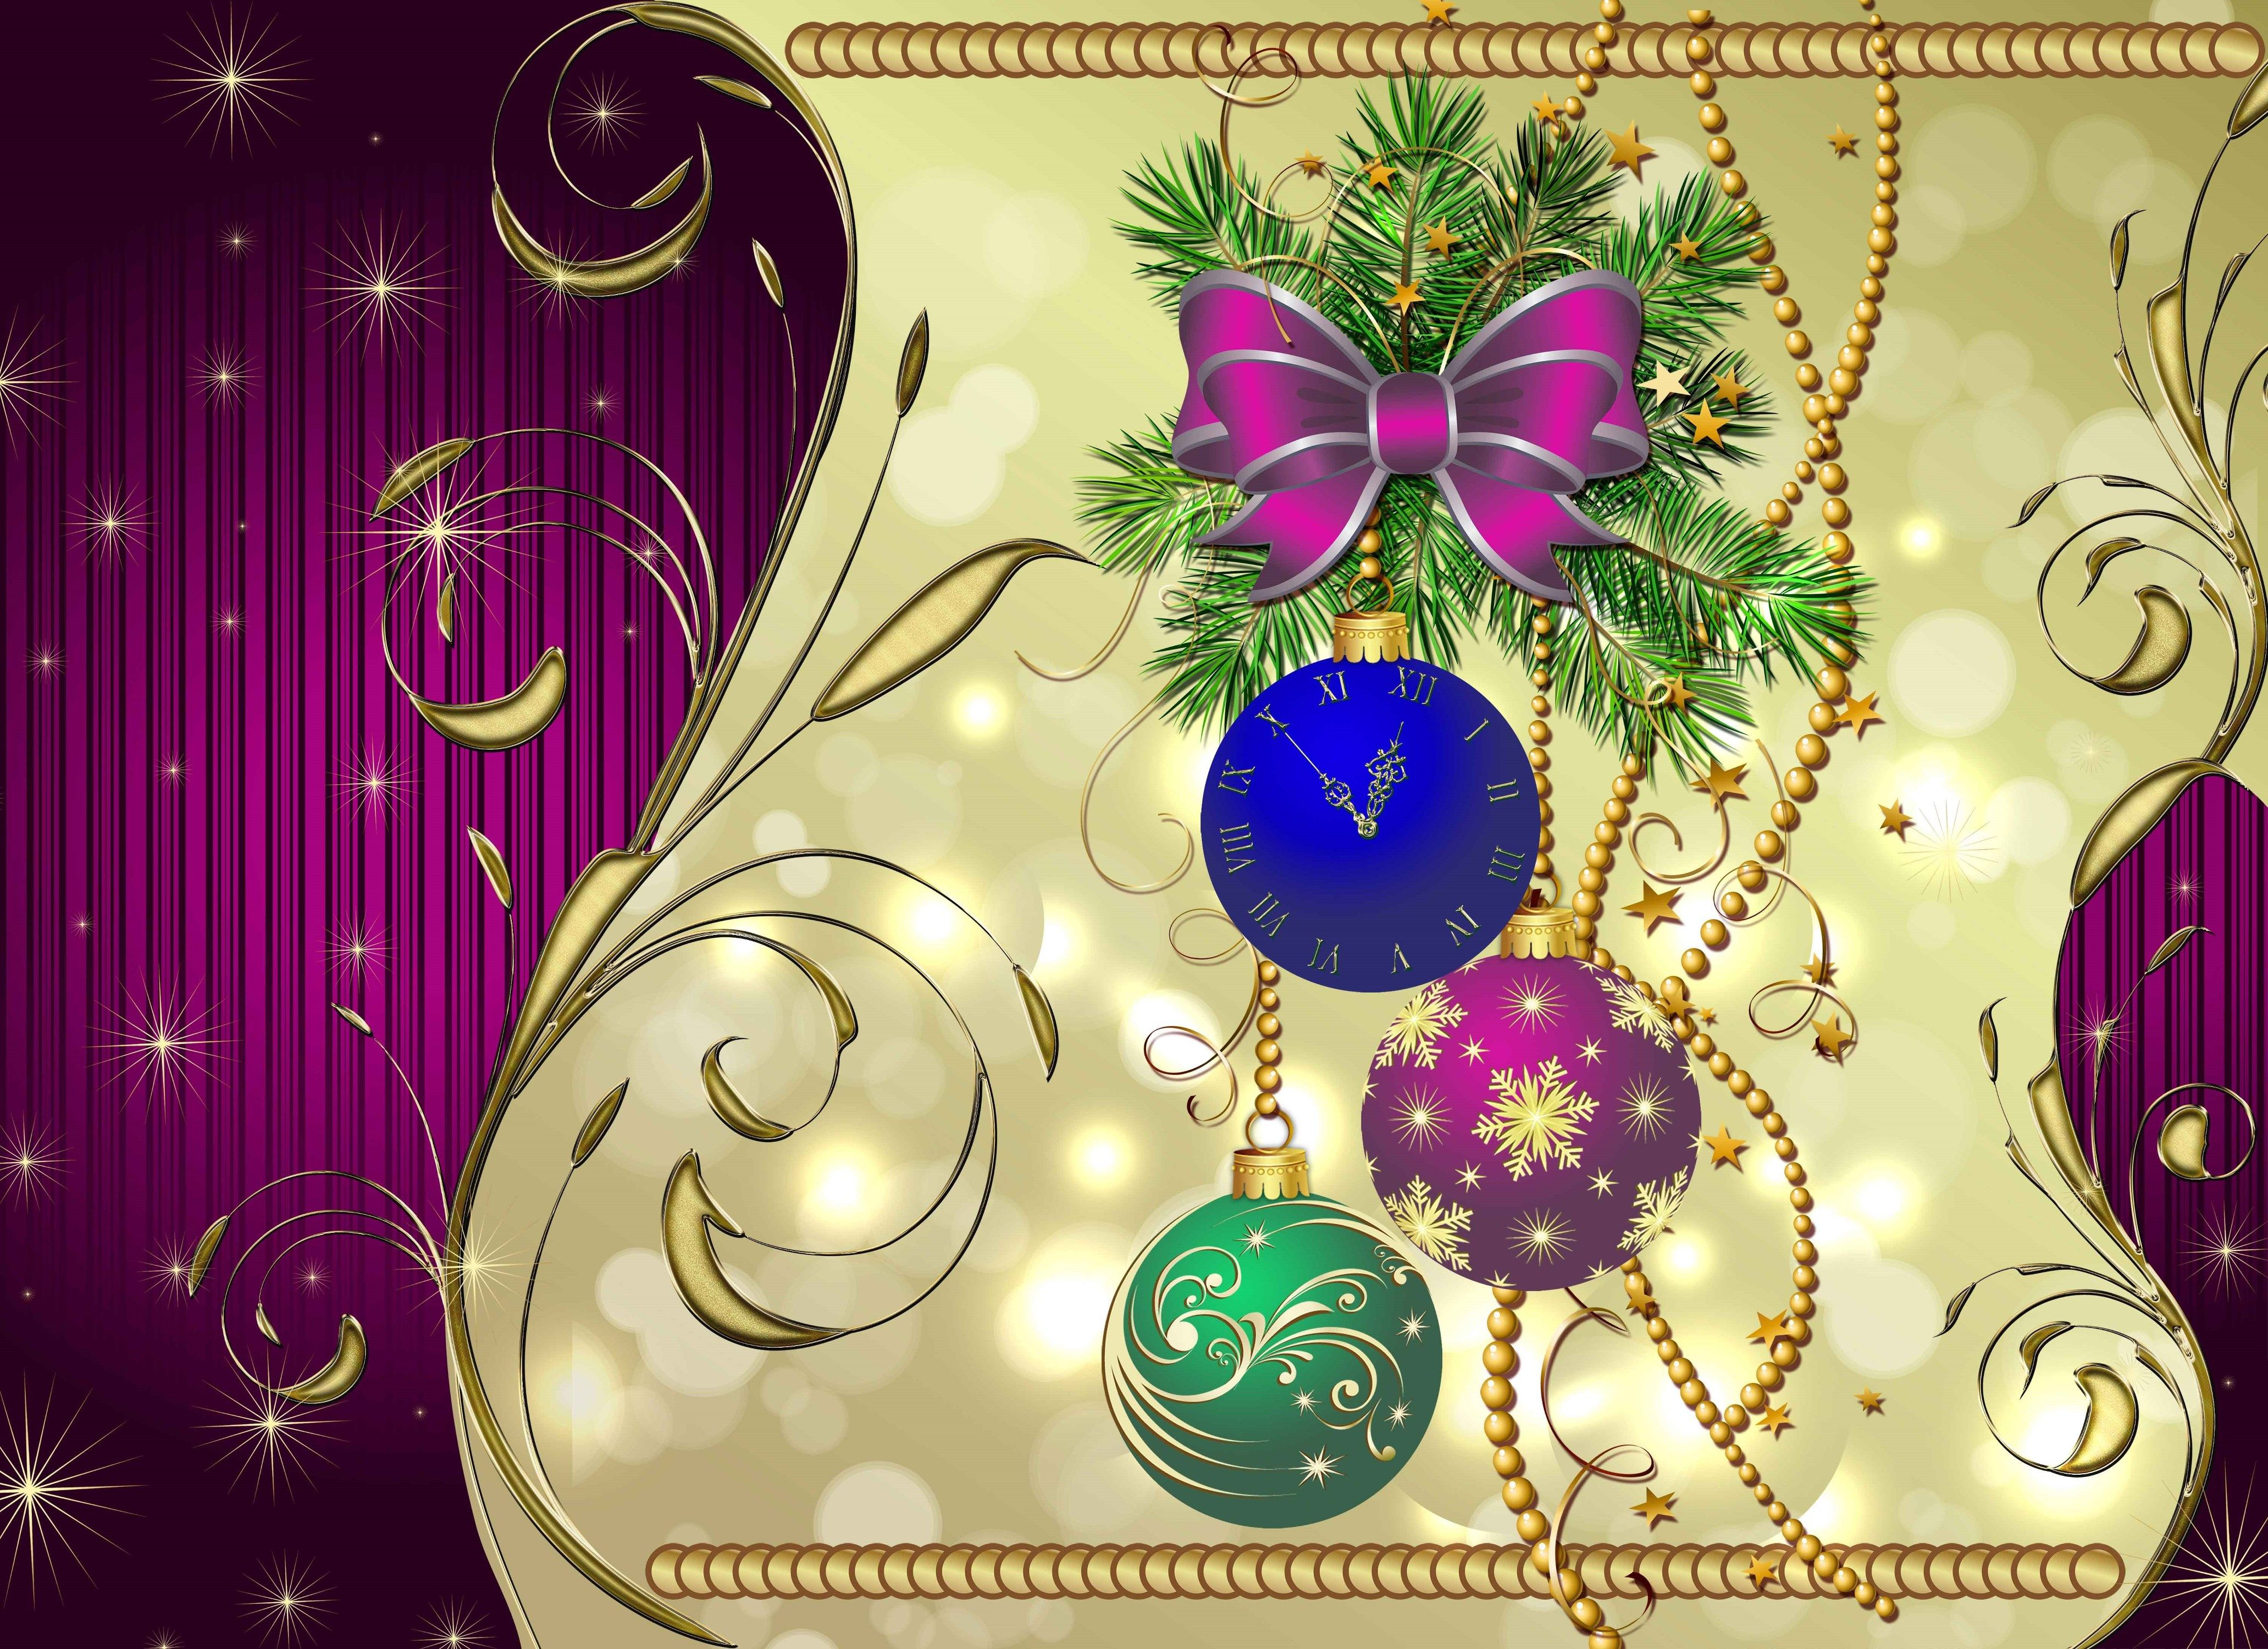 4k New Year Hd Wallpaper 4126x3000 Wallpapers And